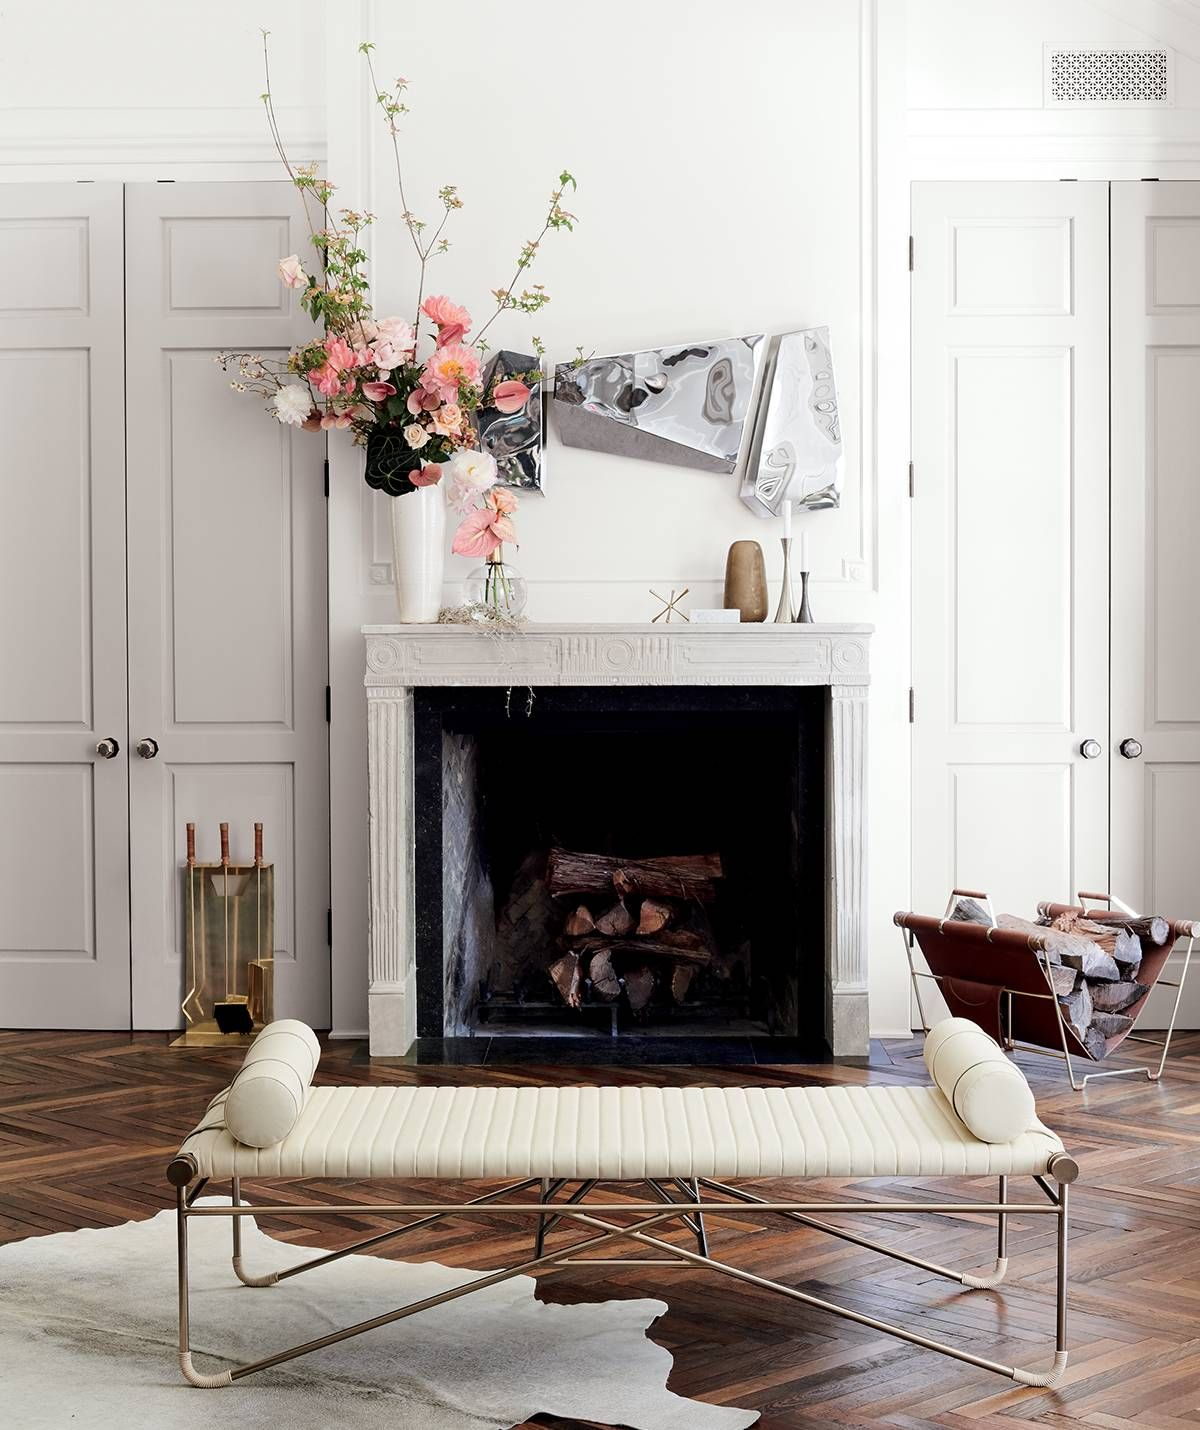 Stores Like Cb2 The Chic New Goop For Cb2 Collection Interiors Home Decor